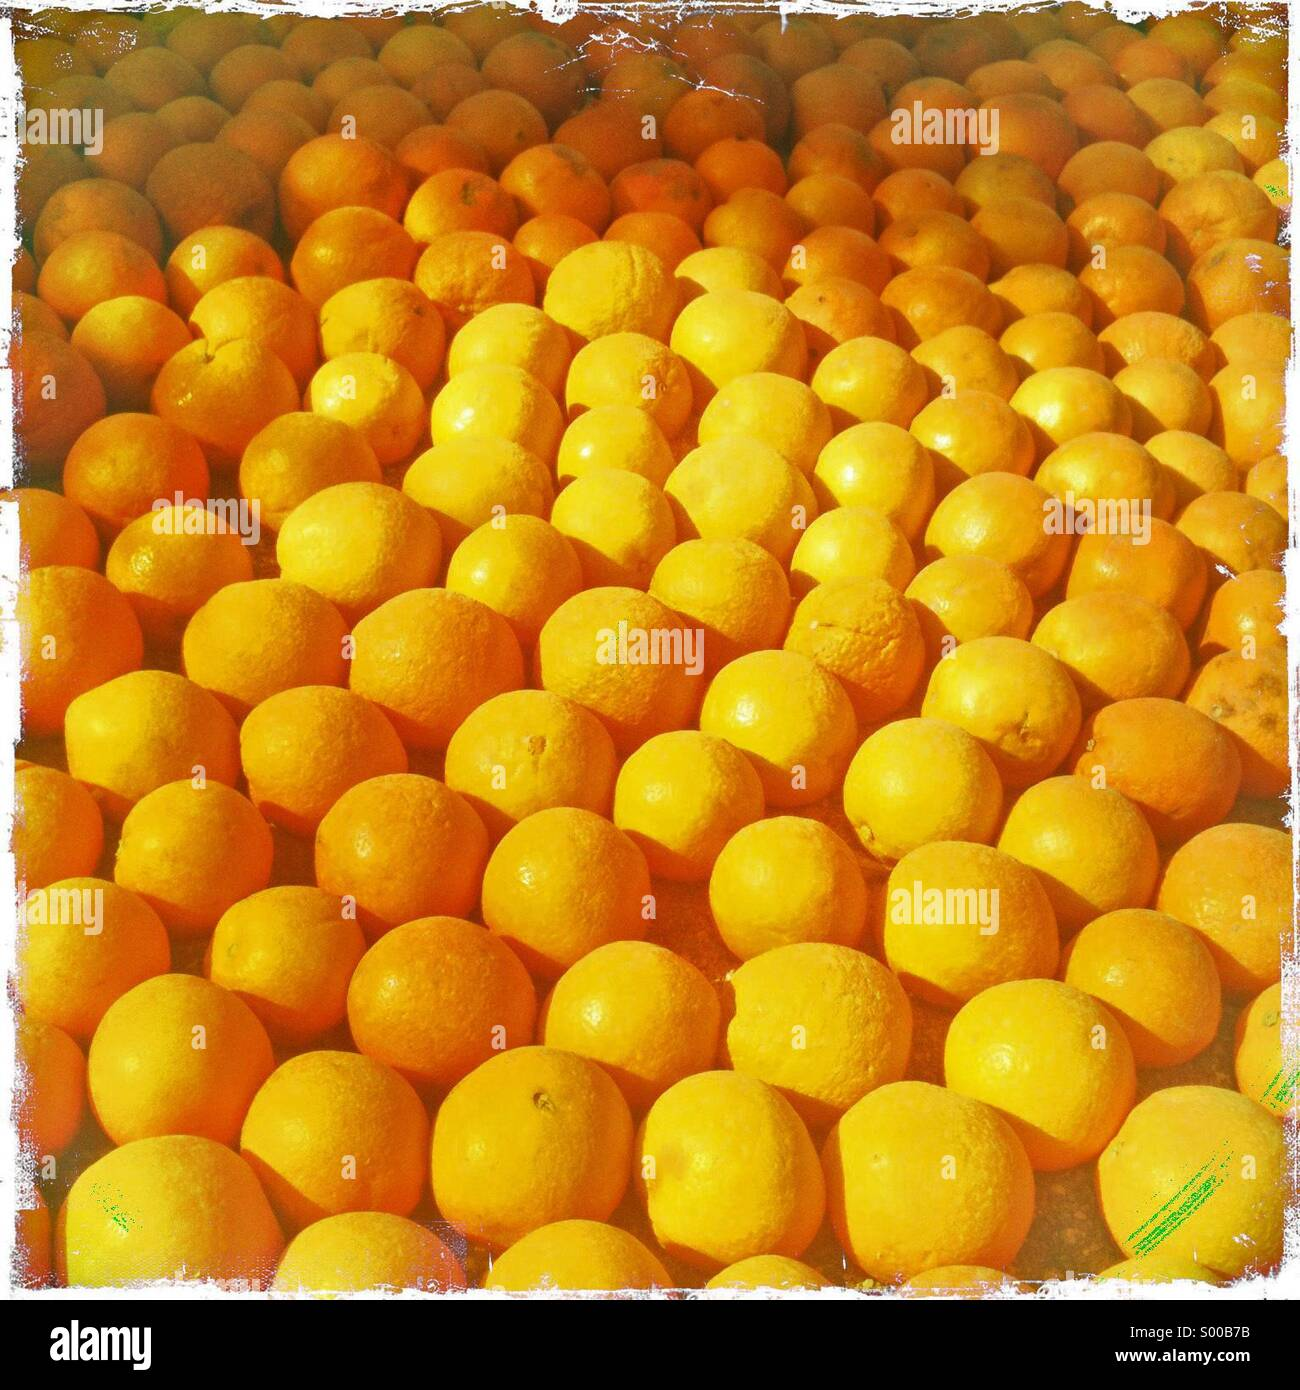 Oranges on display at lemon festival Menton France - Stock Image